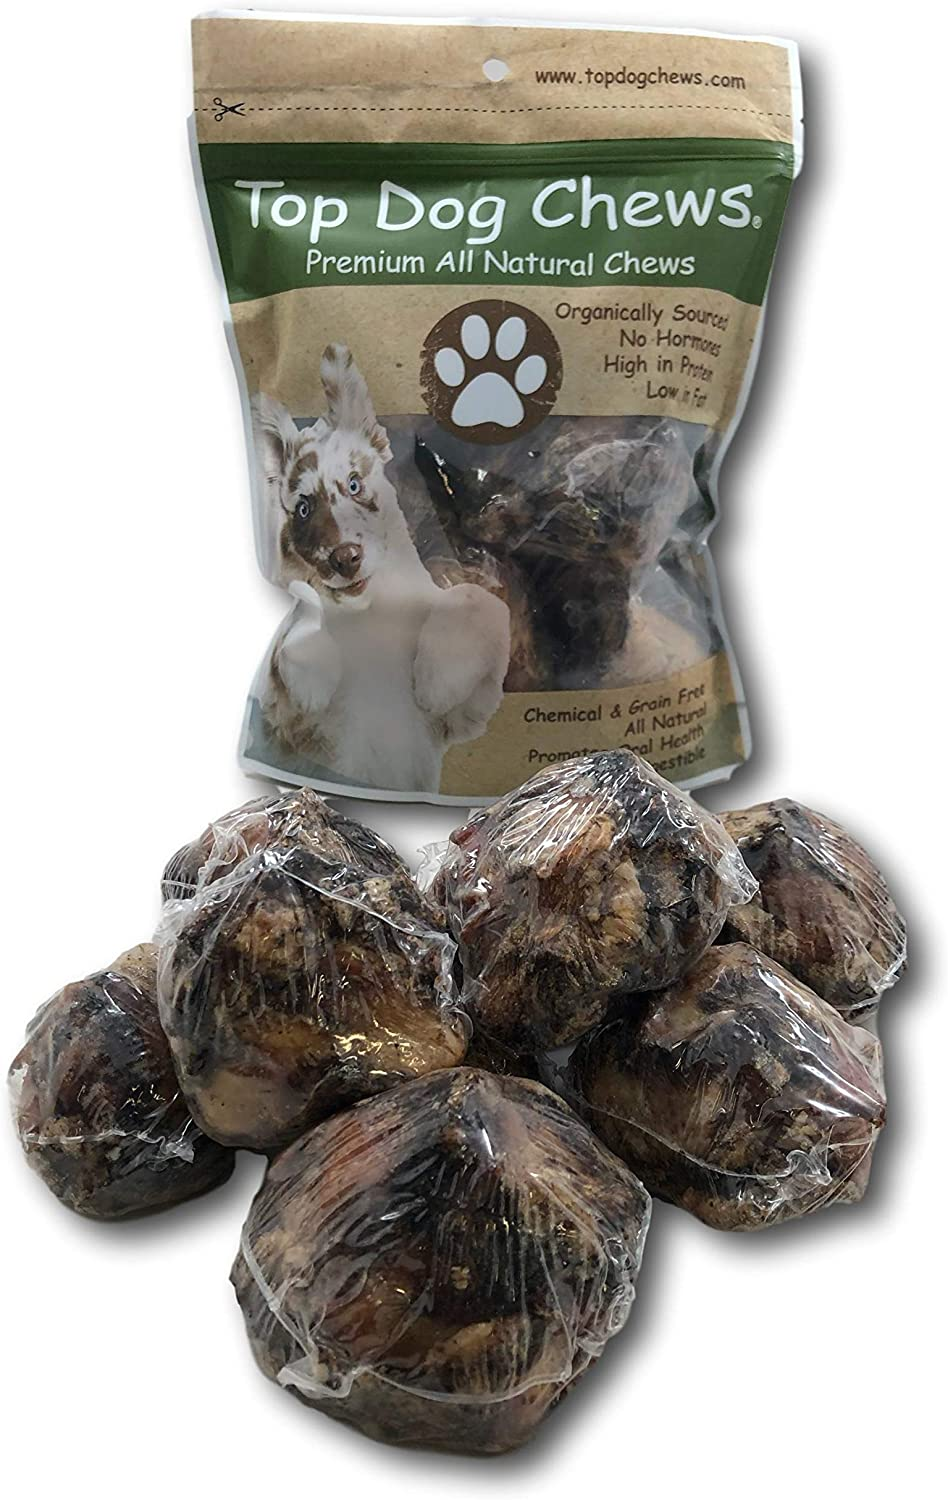 Top Dog Chews USA Dog Bone Knee Caps – 100% Natural Long Lasting Beef Chews for Dogs Perfect for Small, Medium & Large Dogs